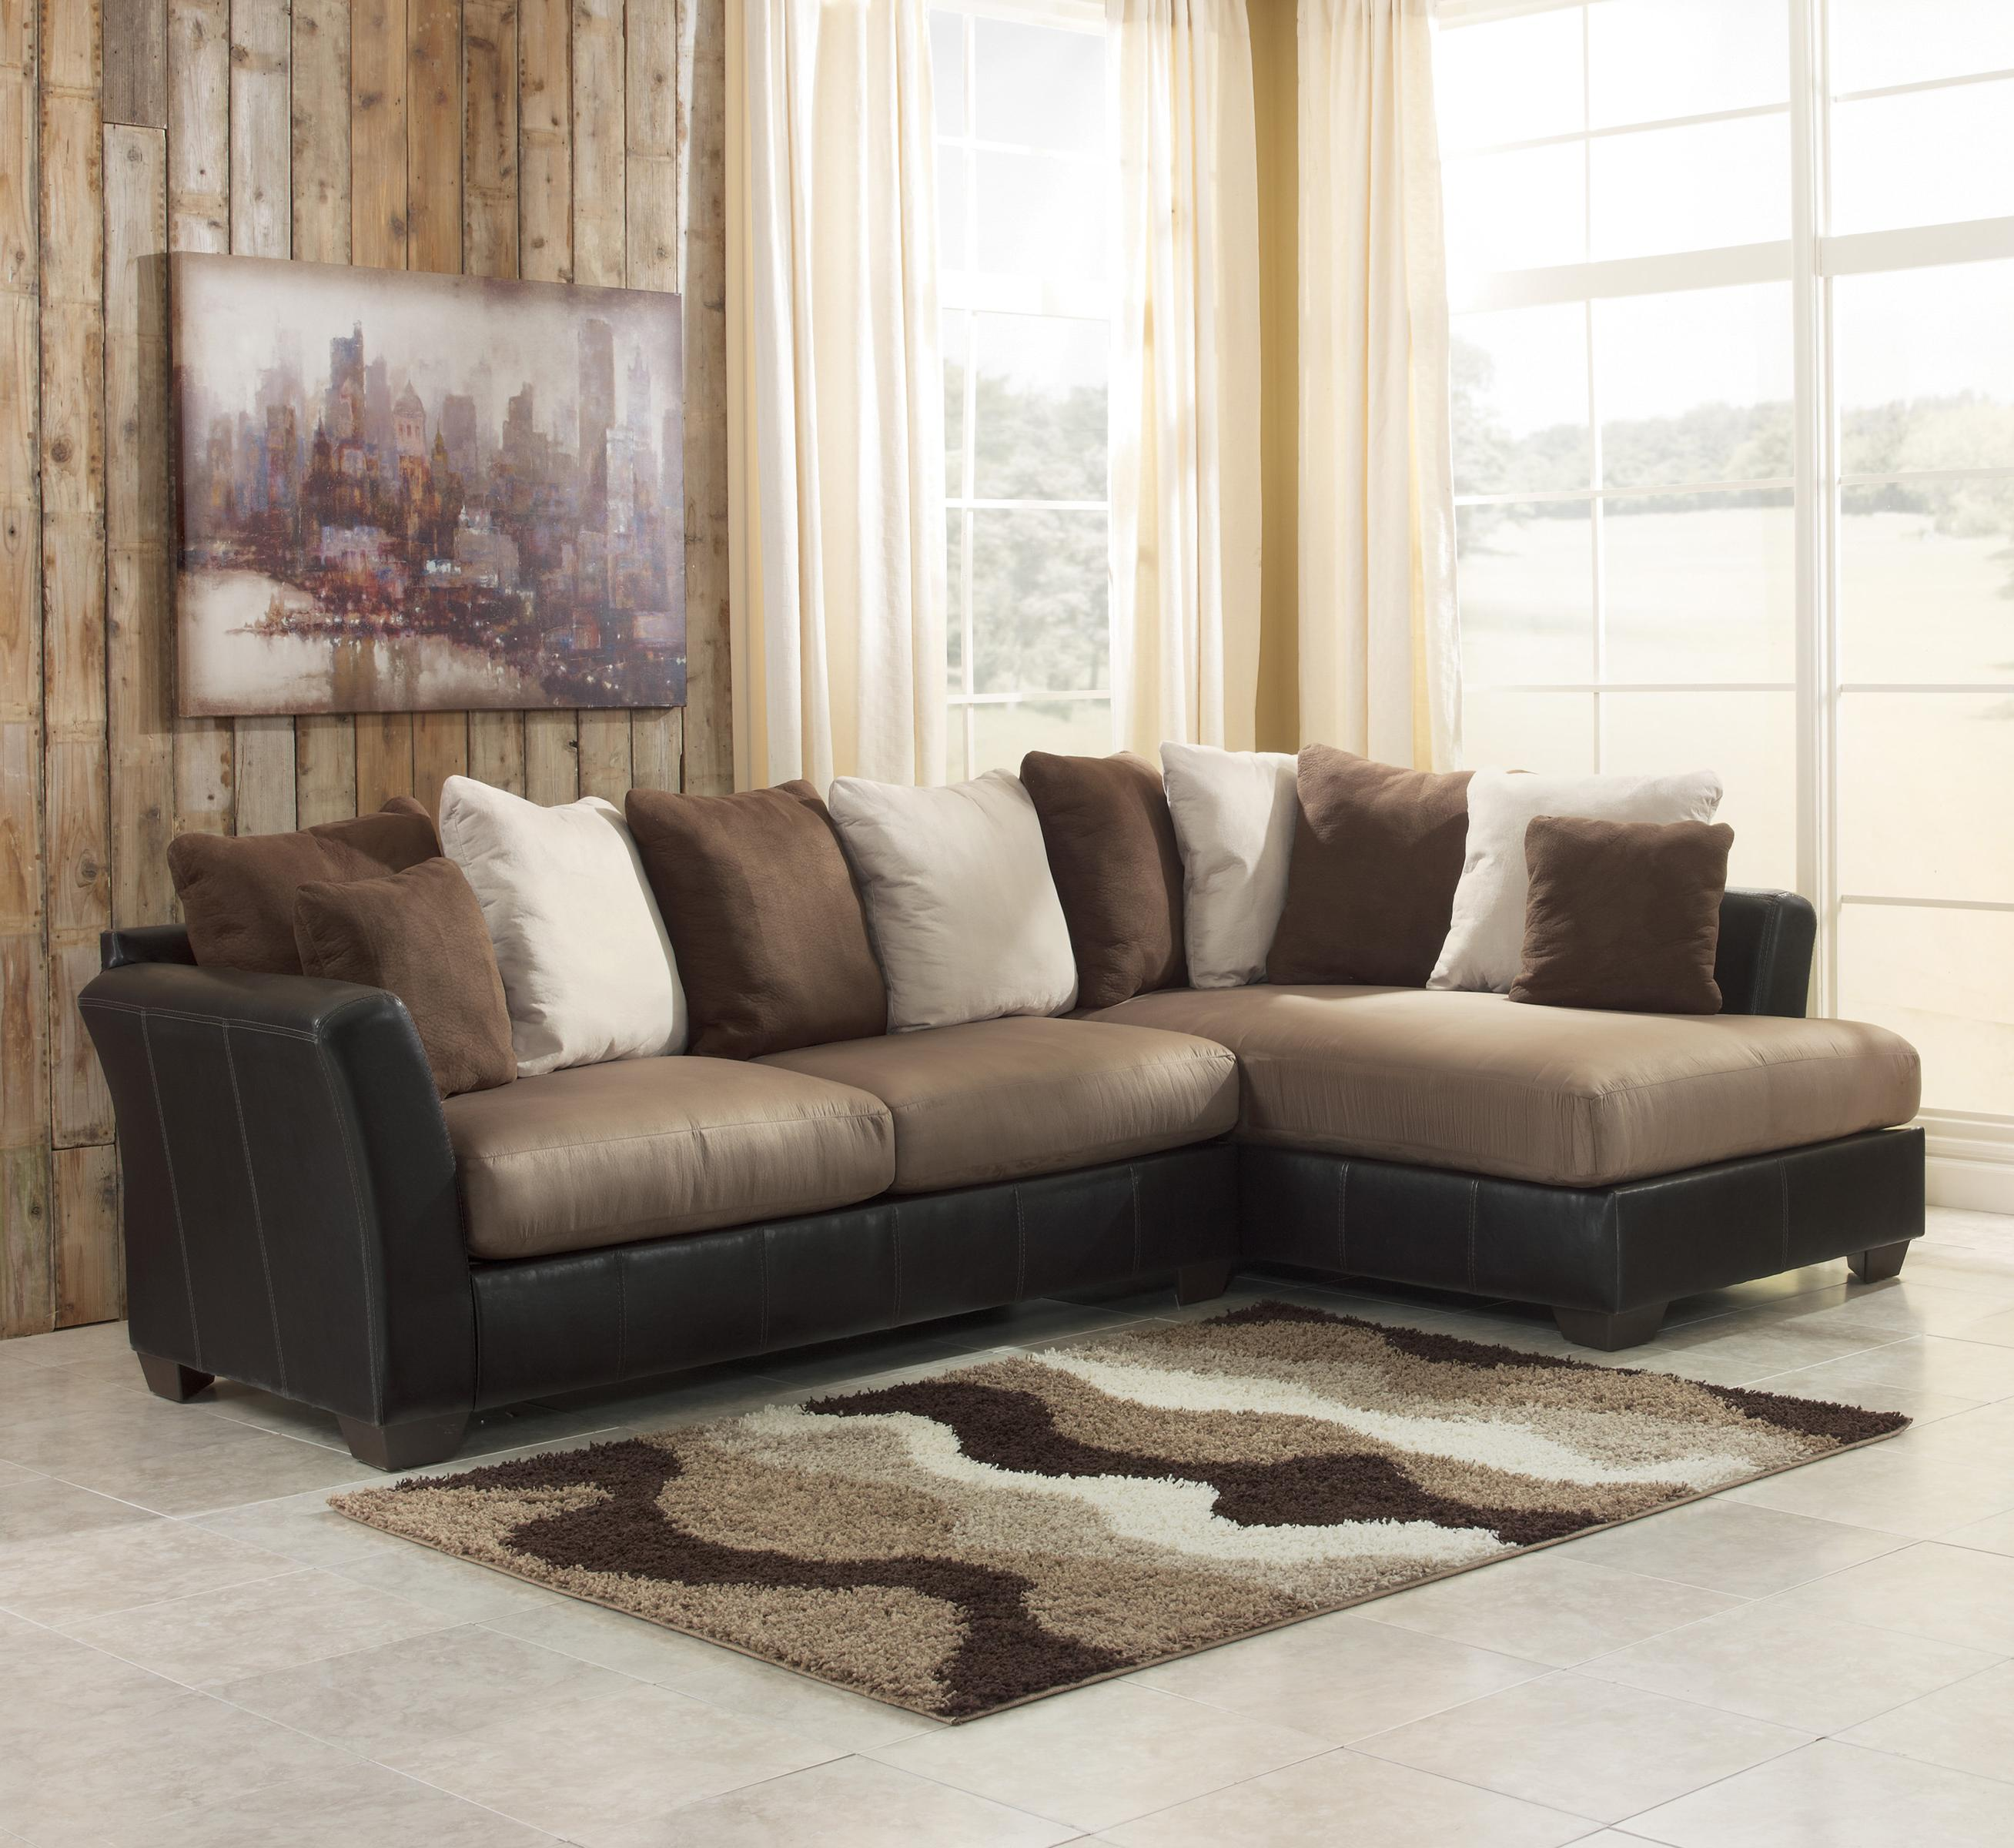 2 piece sectional sofa with chaise design homesfeed for Chaise design coloree